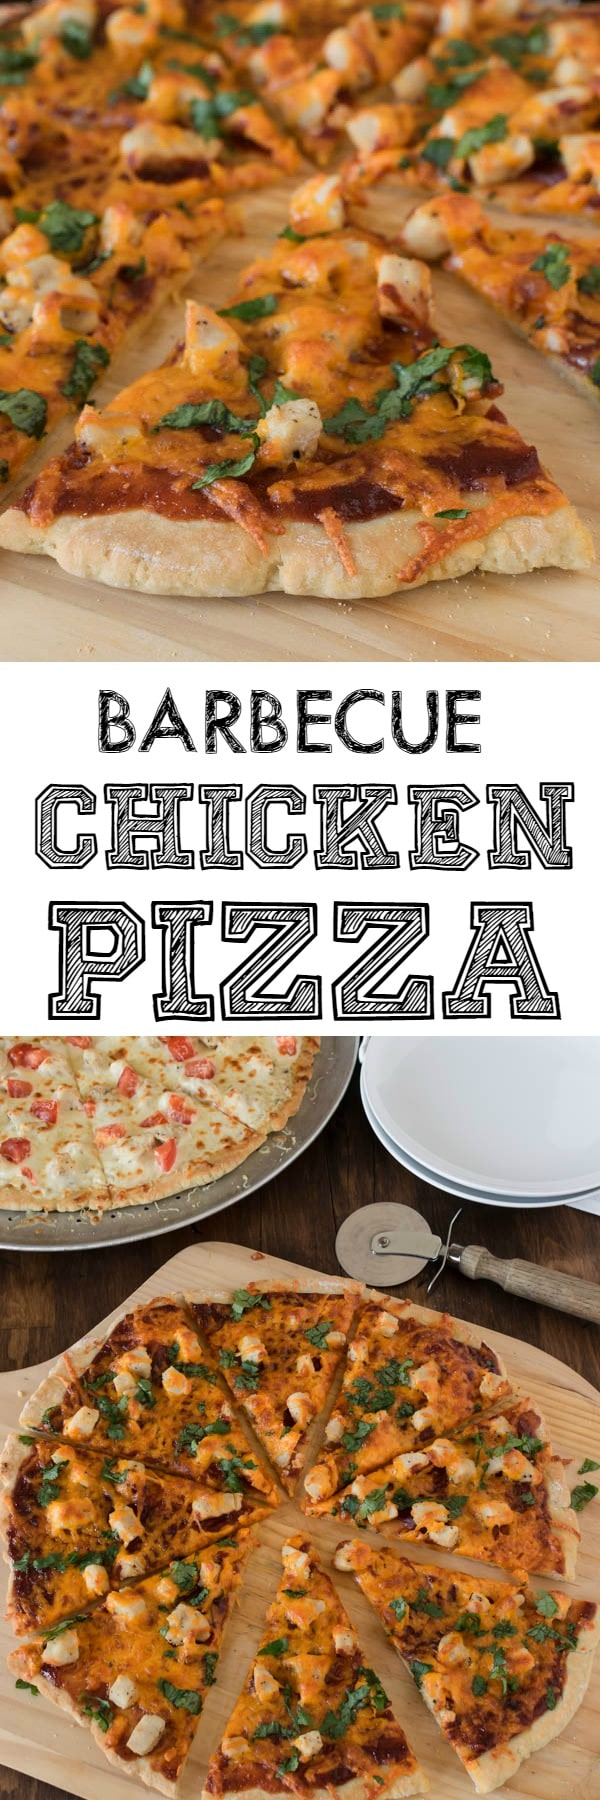 Pizza can be so much more than tomato sauce and mozza cheese. This gluten free Barbecue Chicken Pizza has a great kick, and has become one of our favourite pizzas when we do pizza night.